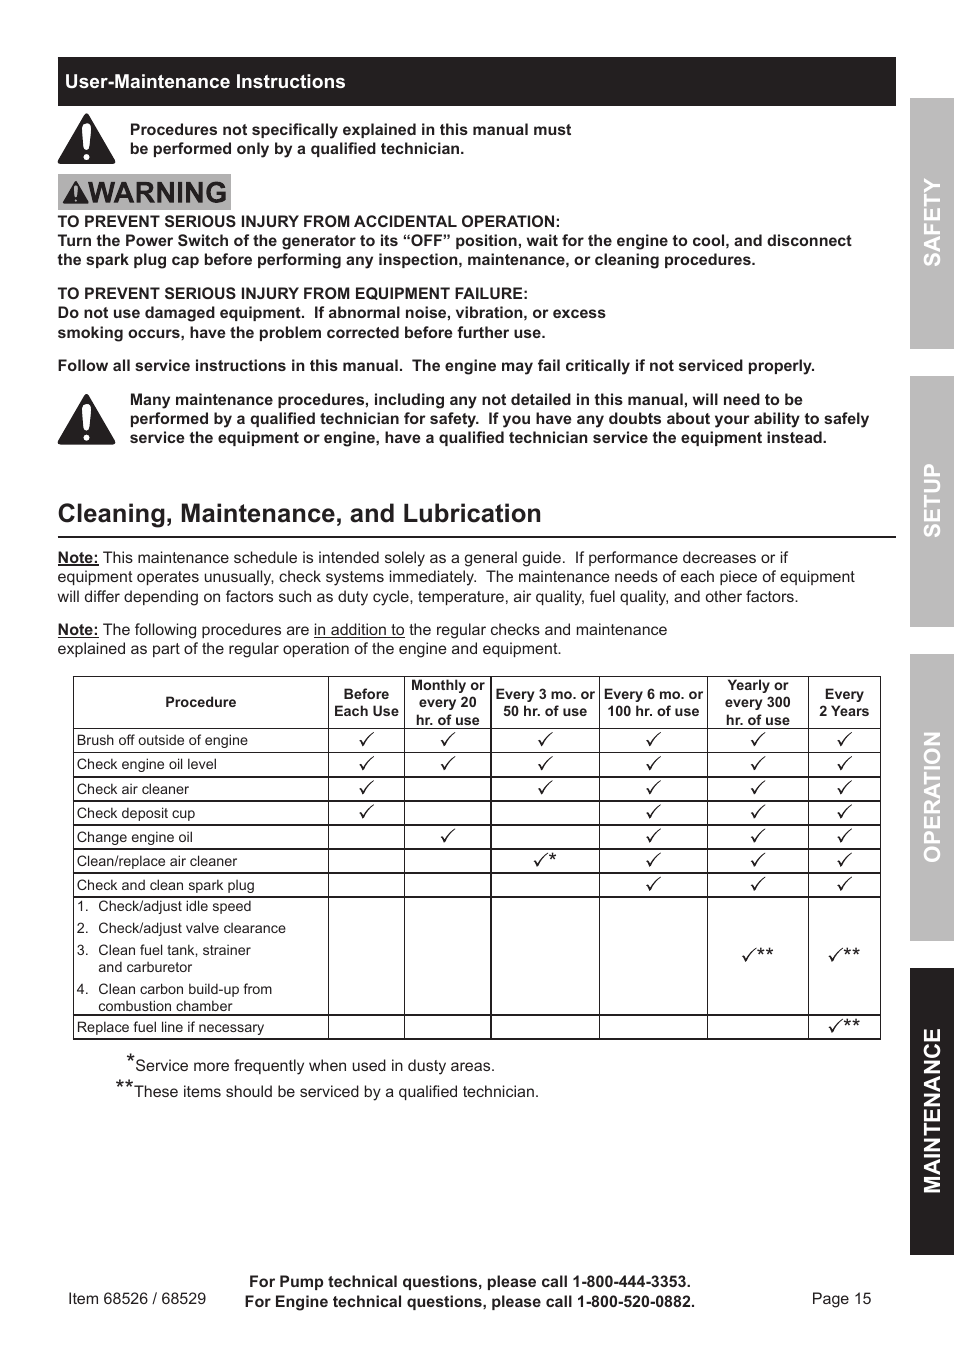 Cleaning, maintenance, and lubrication, Safety o pera tion m